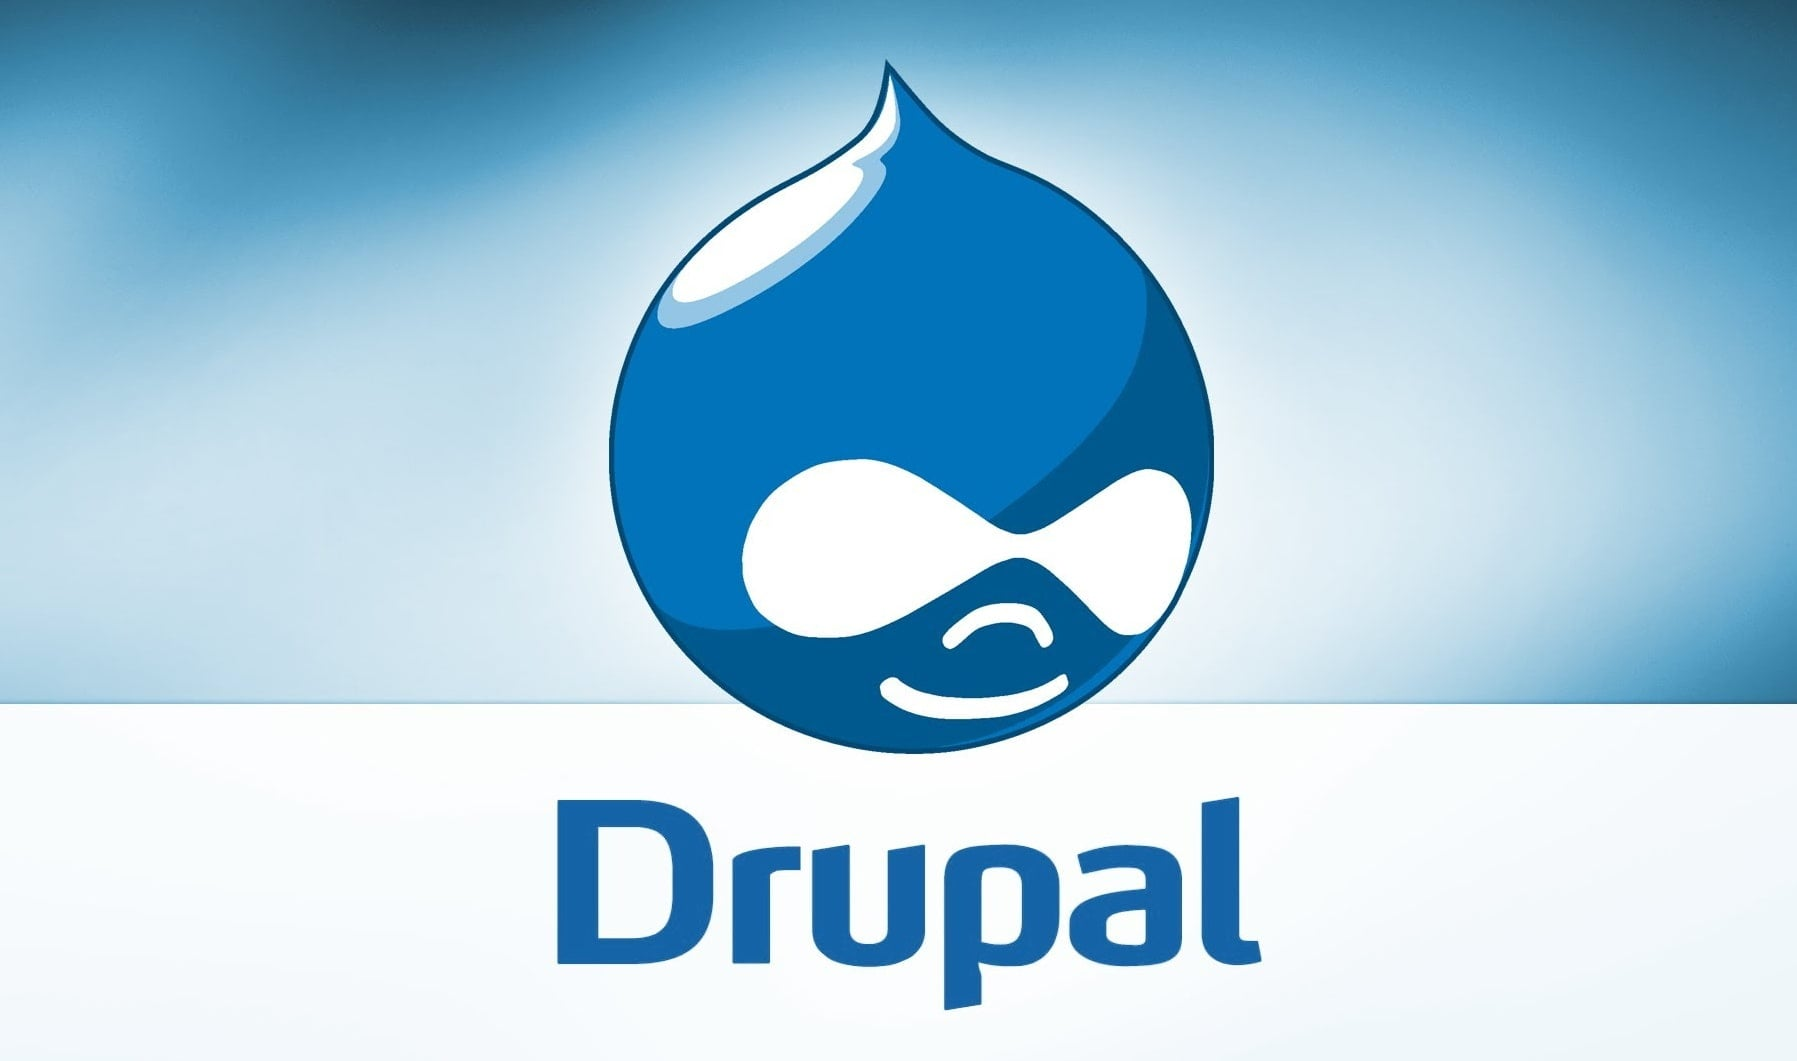 Why You Should Prefer Using Drupal for Website Development